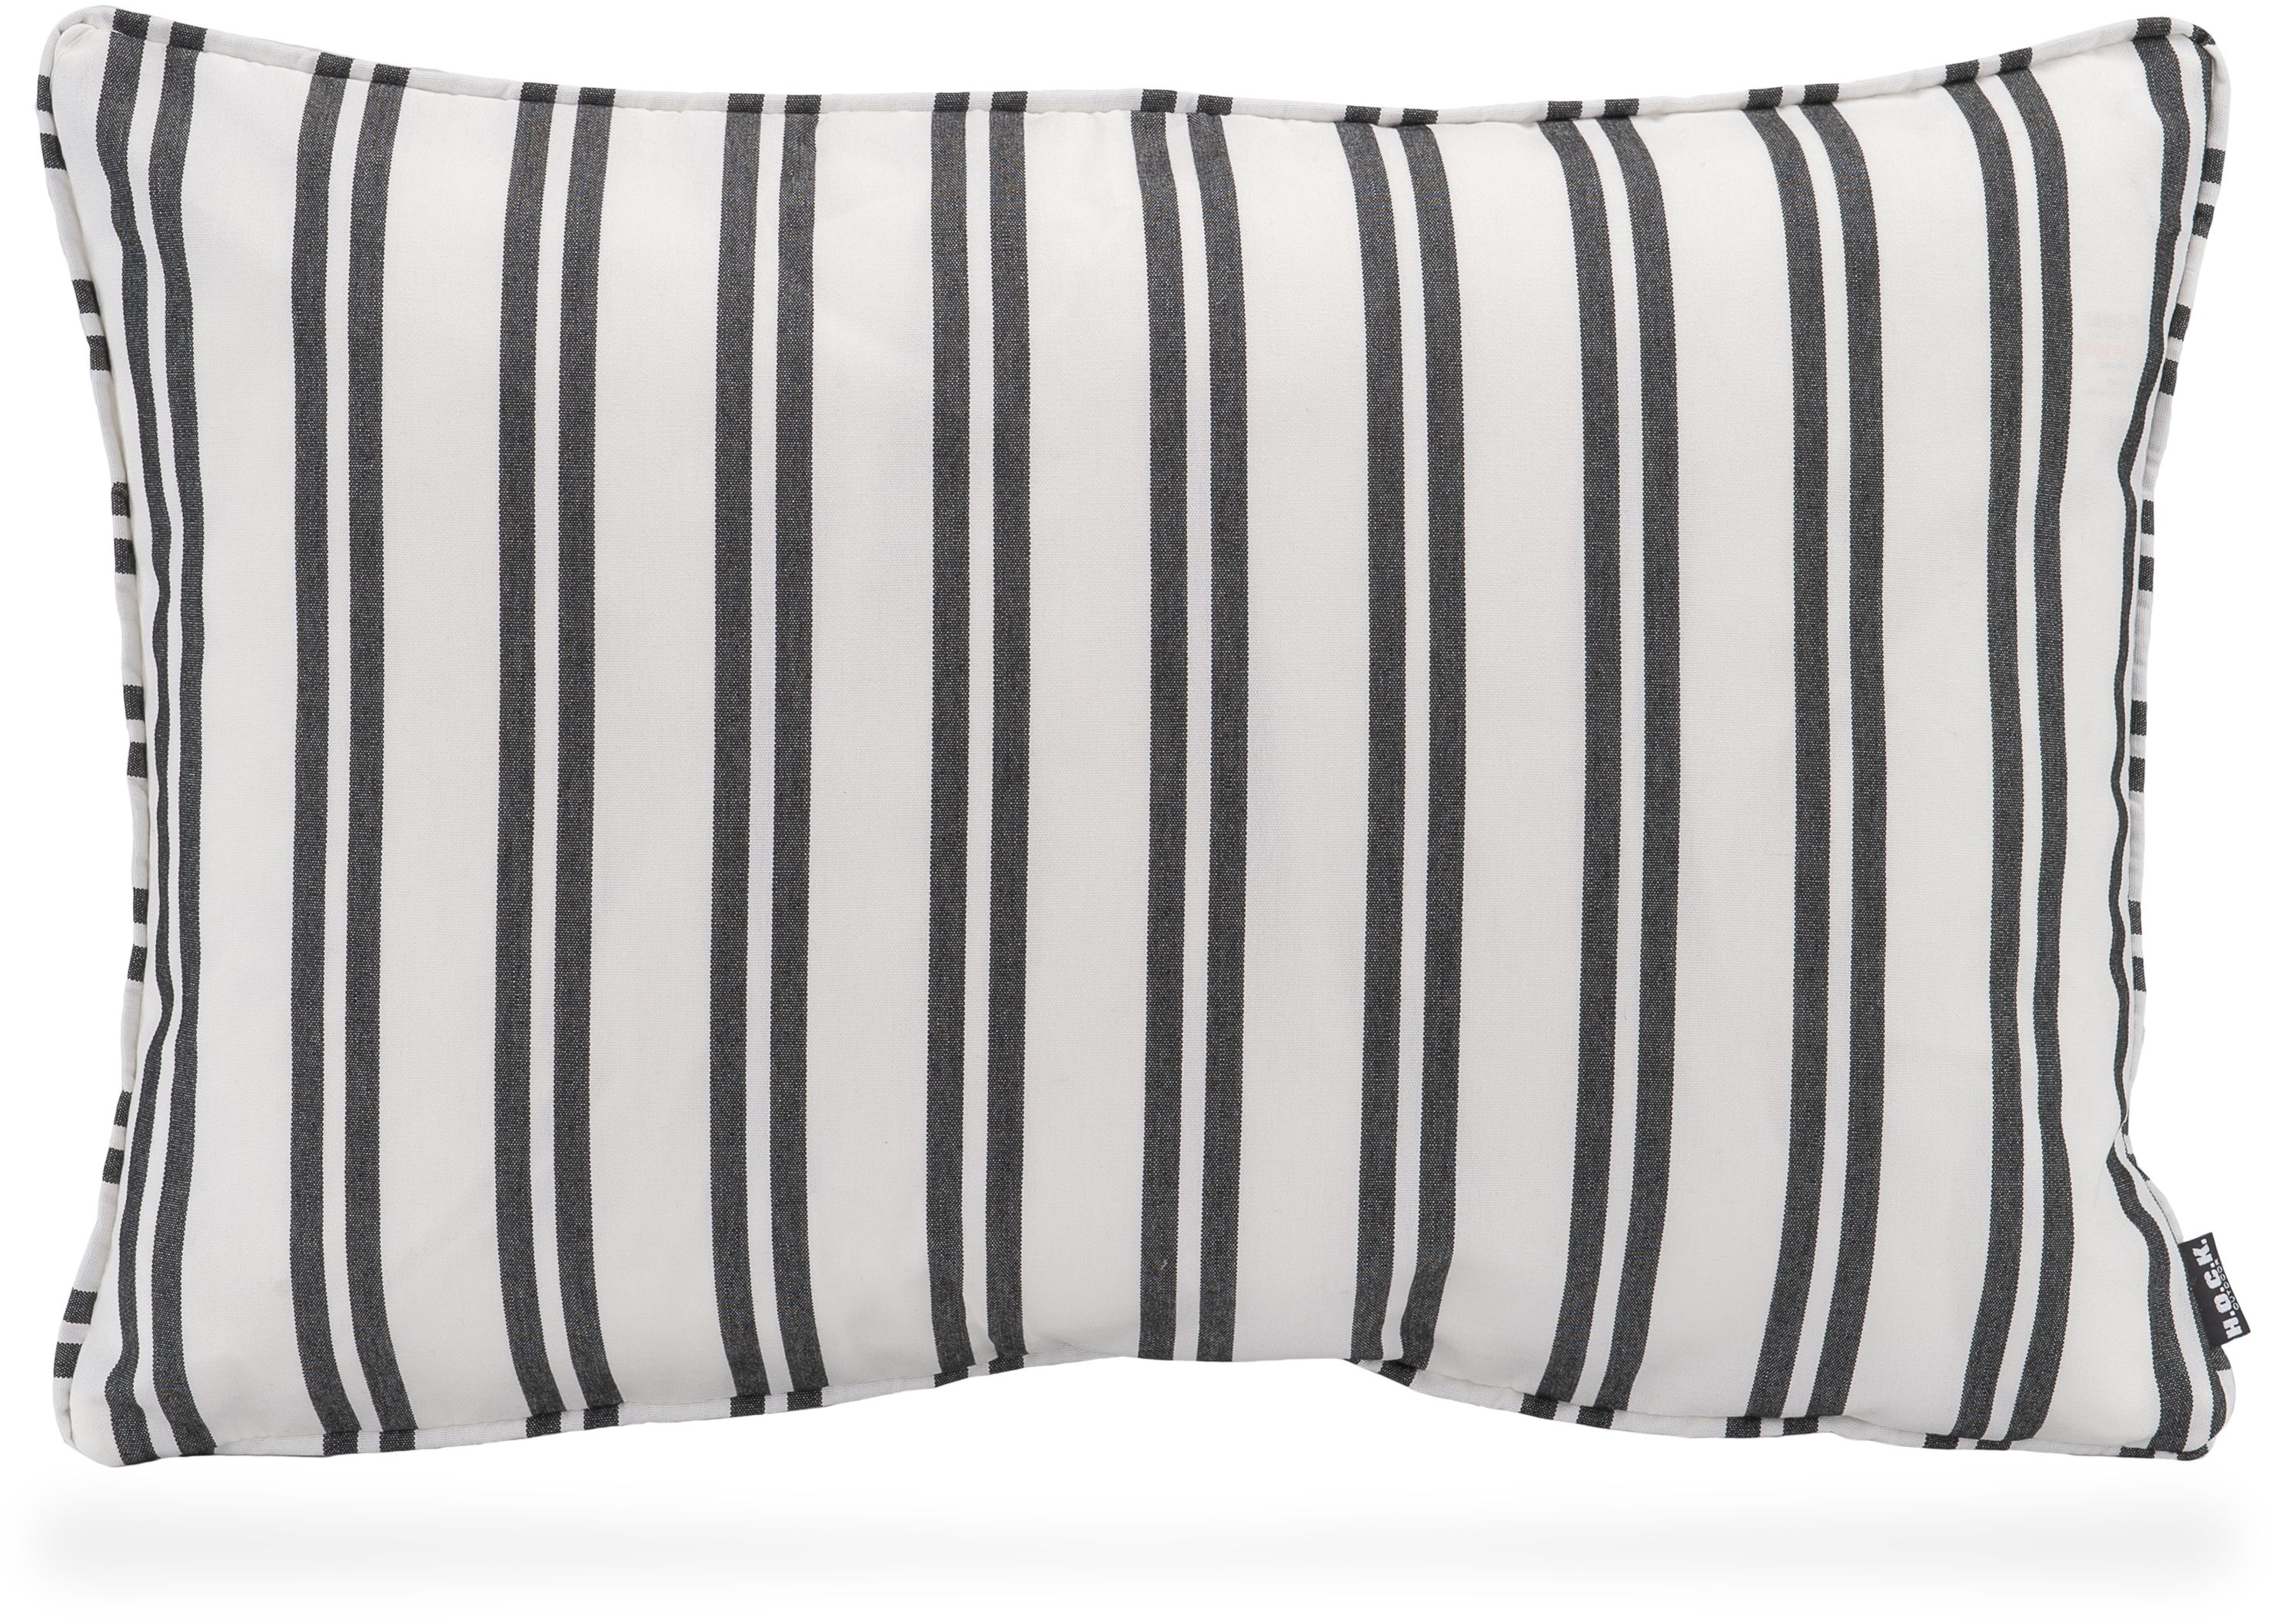 Kissen 60x40 New England Outdoor Kissen 60x40 Whithe Stripes Black White